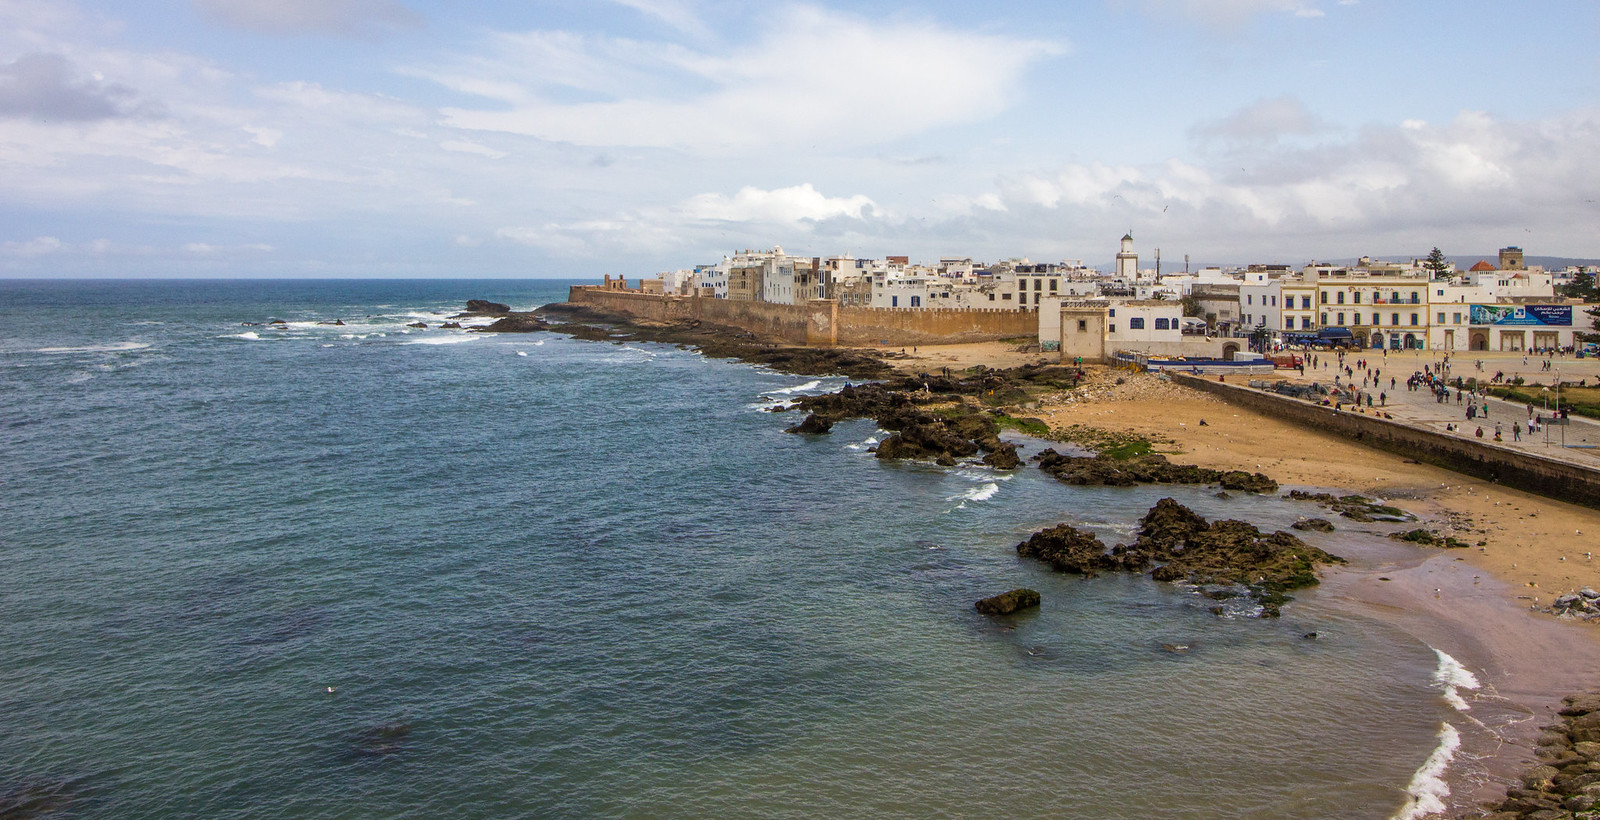 View over Essaouira from the ramparts